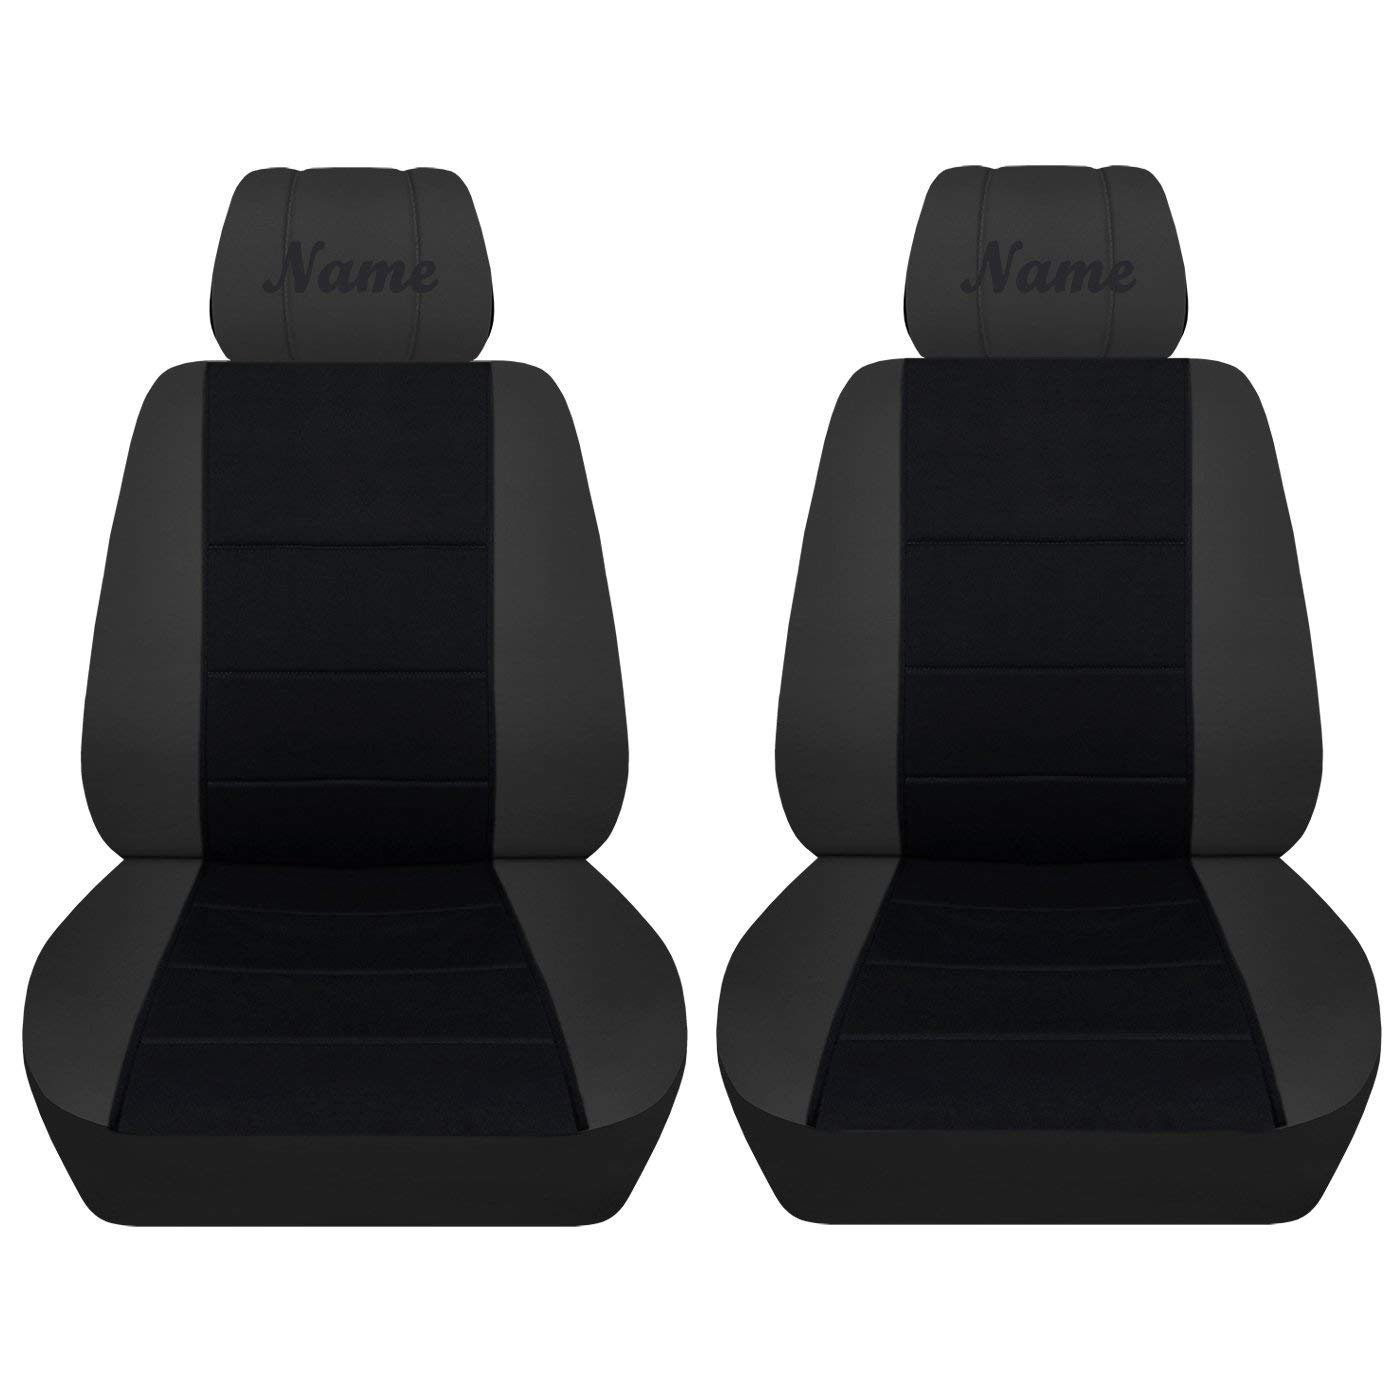 2013-2018 Altima, Steel Grey Black Fits Selected Nissan Models Seat Covers with a Name 21 Color Choices